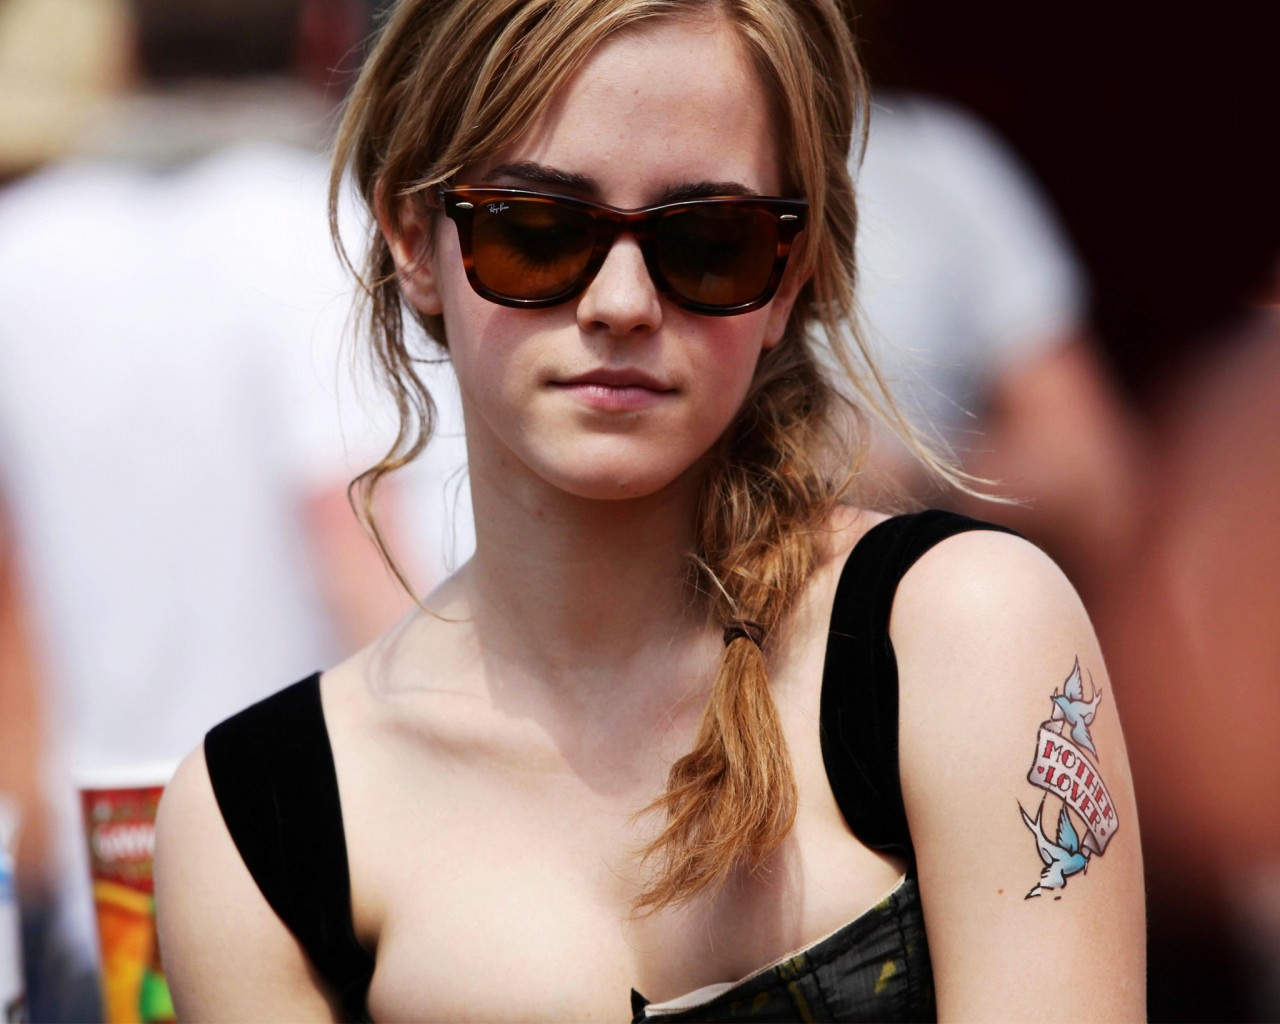 Emma Watson Mother Lover Tattoo Wallpapers Hd Wallpapers Ideas And Designs